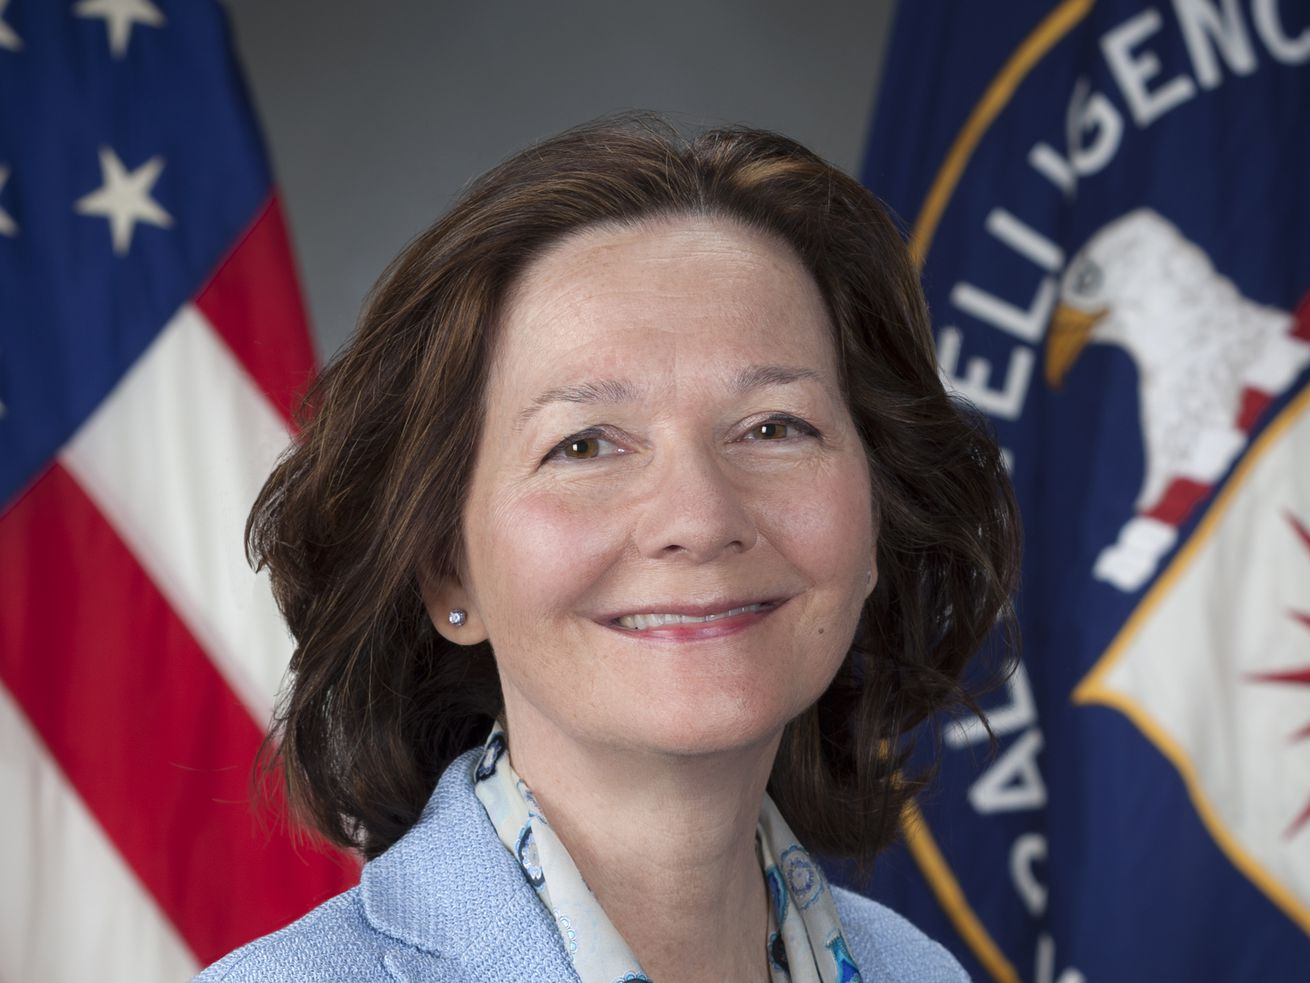 Gina Haspel, President Trump's nominee to head the CIA, has just been confirmed by the Senate despite her role in a Bush-era torture program.